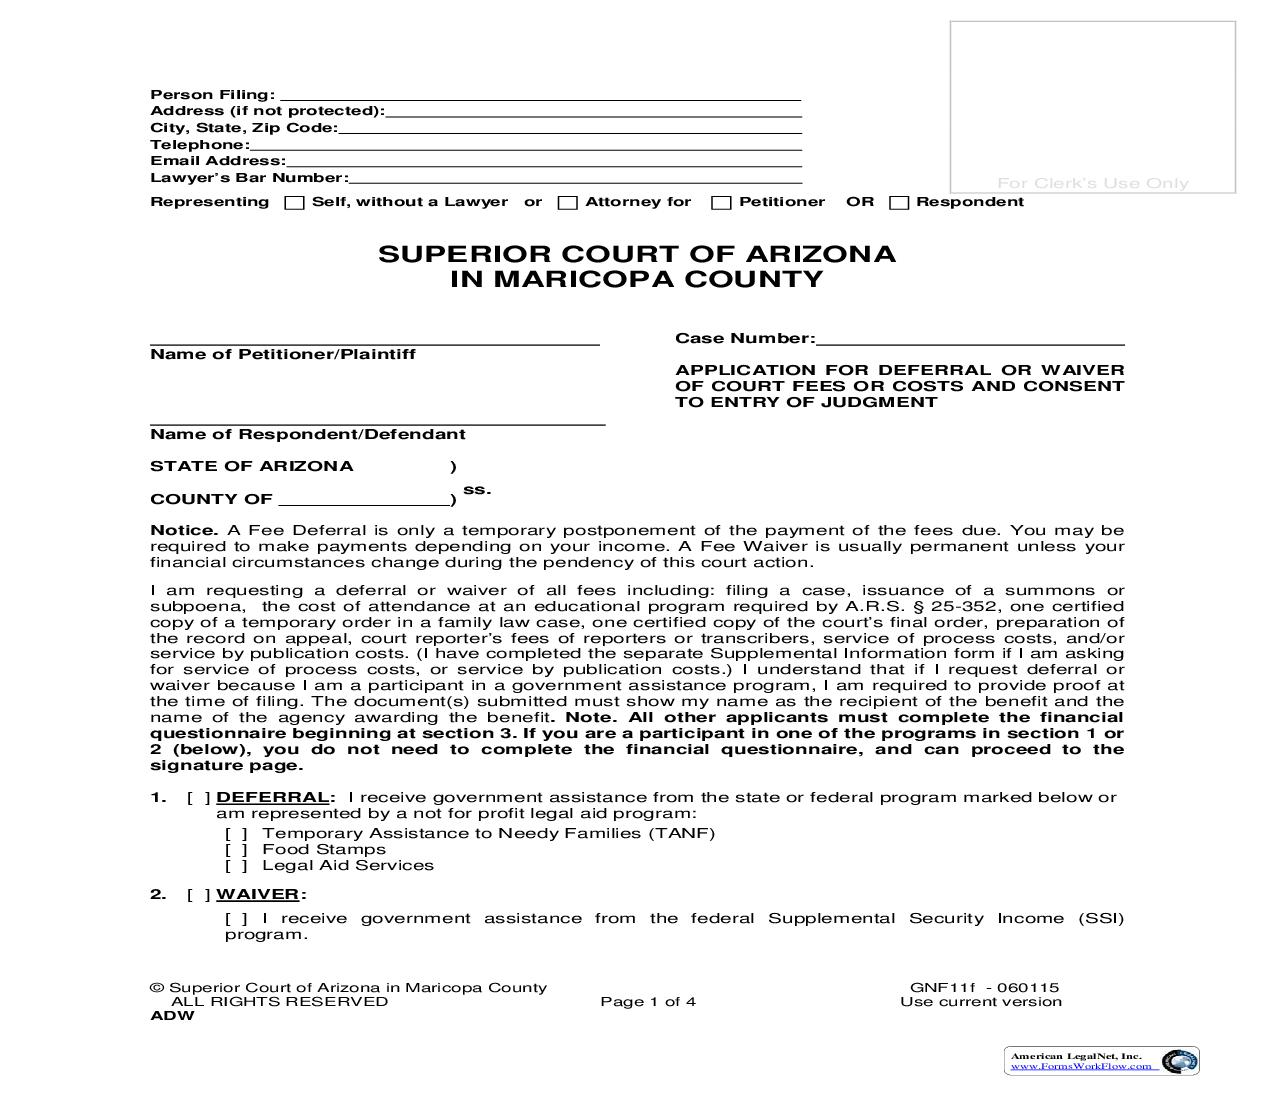 Application For Deferral Or Waiver Of Court Fees And Or Costs And Consent To Entry Of Judgment {GNF11f} | Pdf Fpdf Doc Docx | Arizona